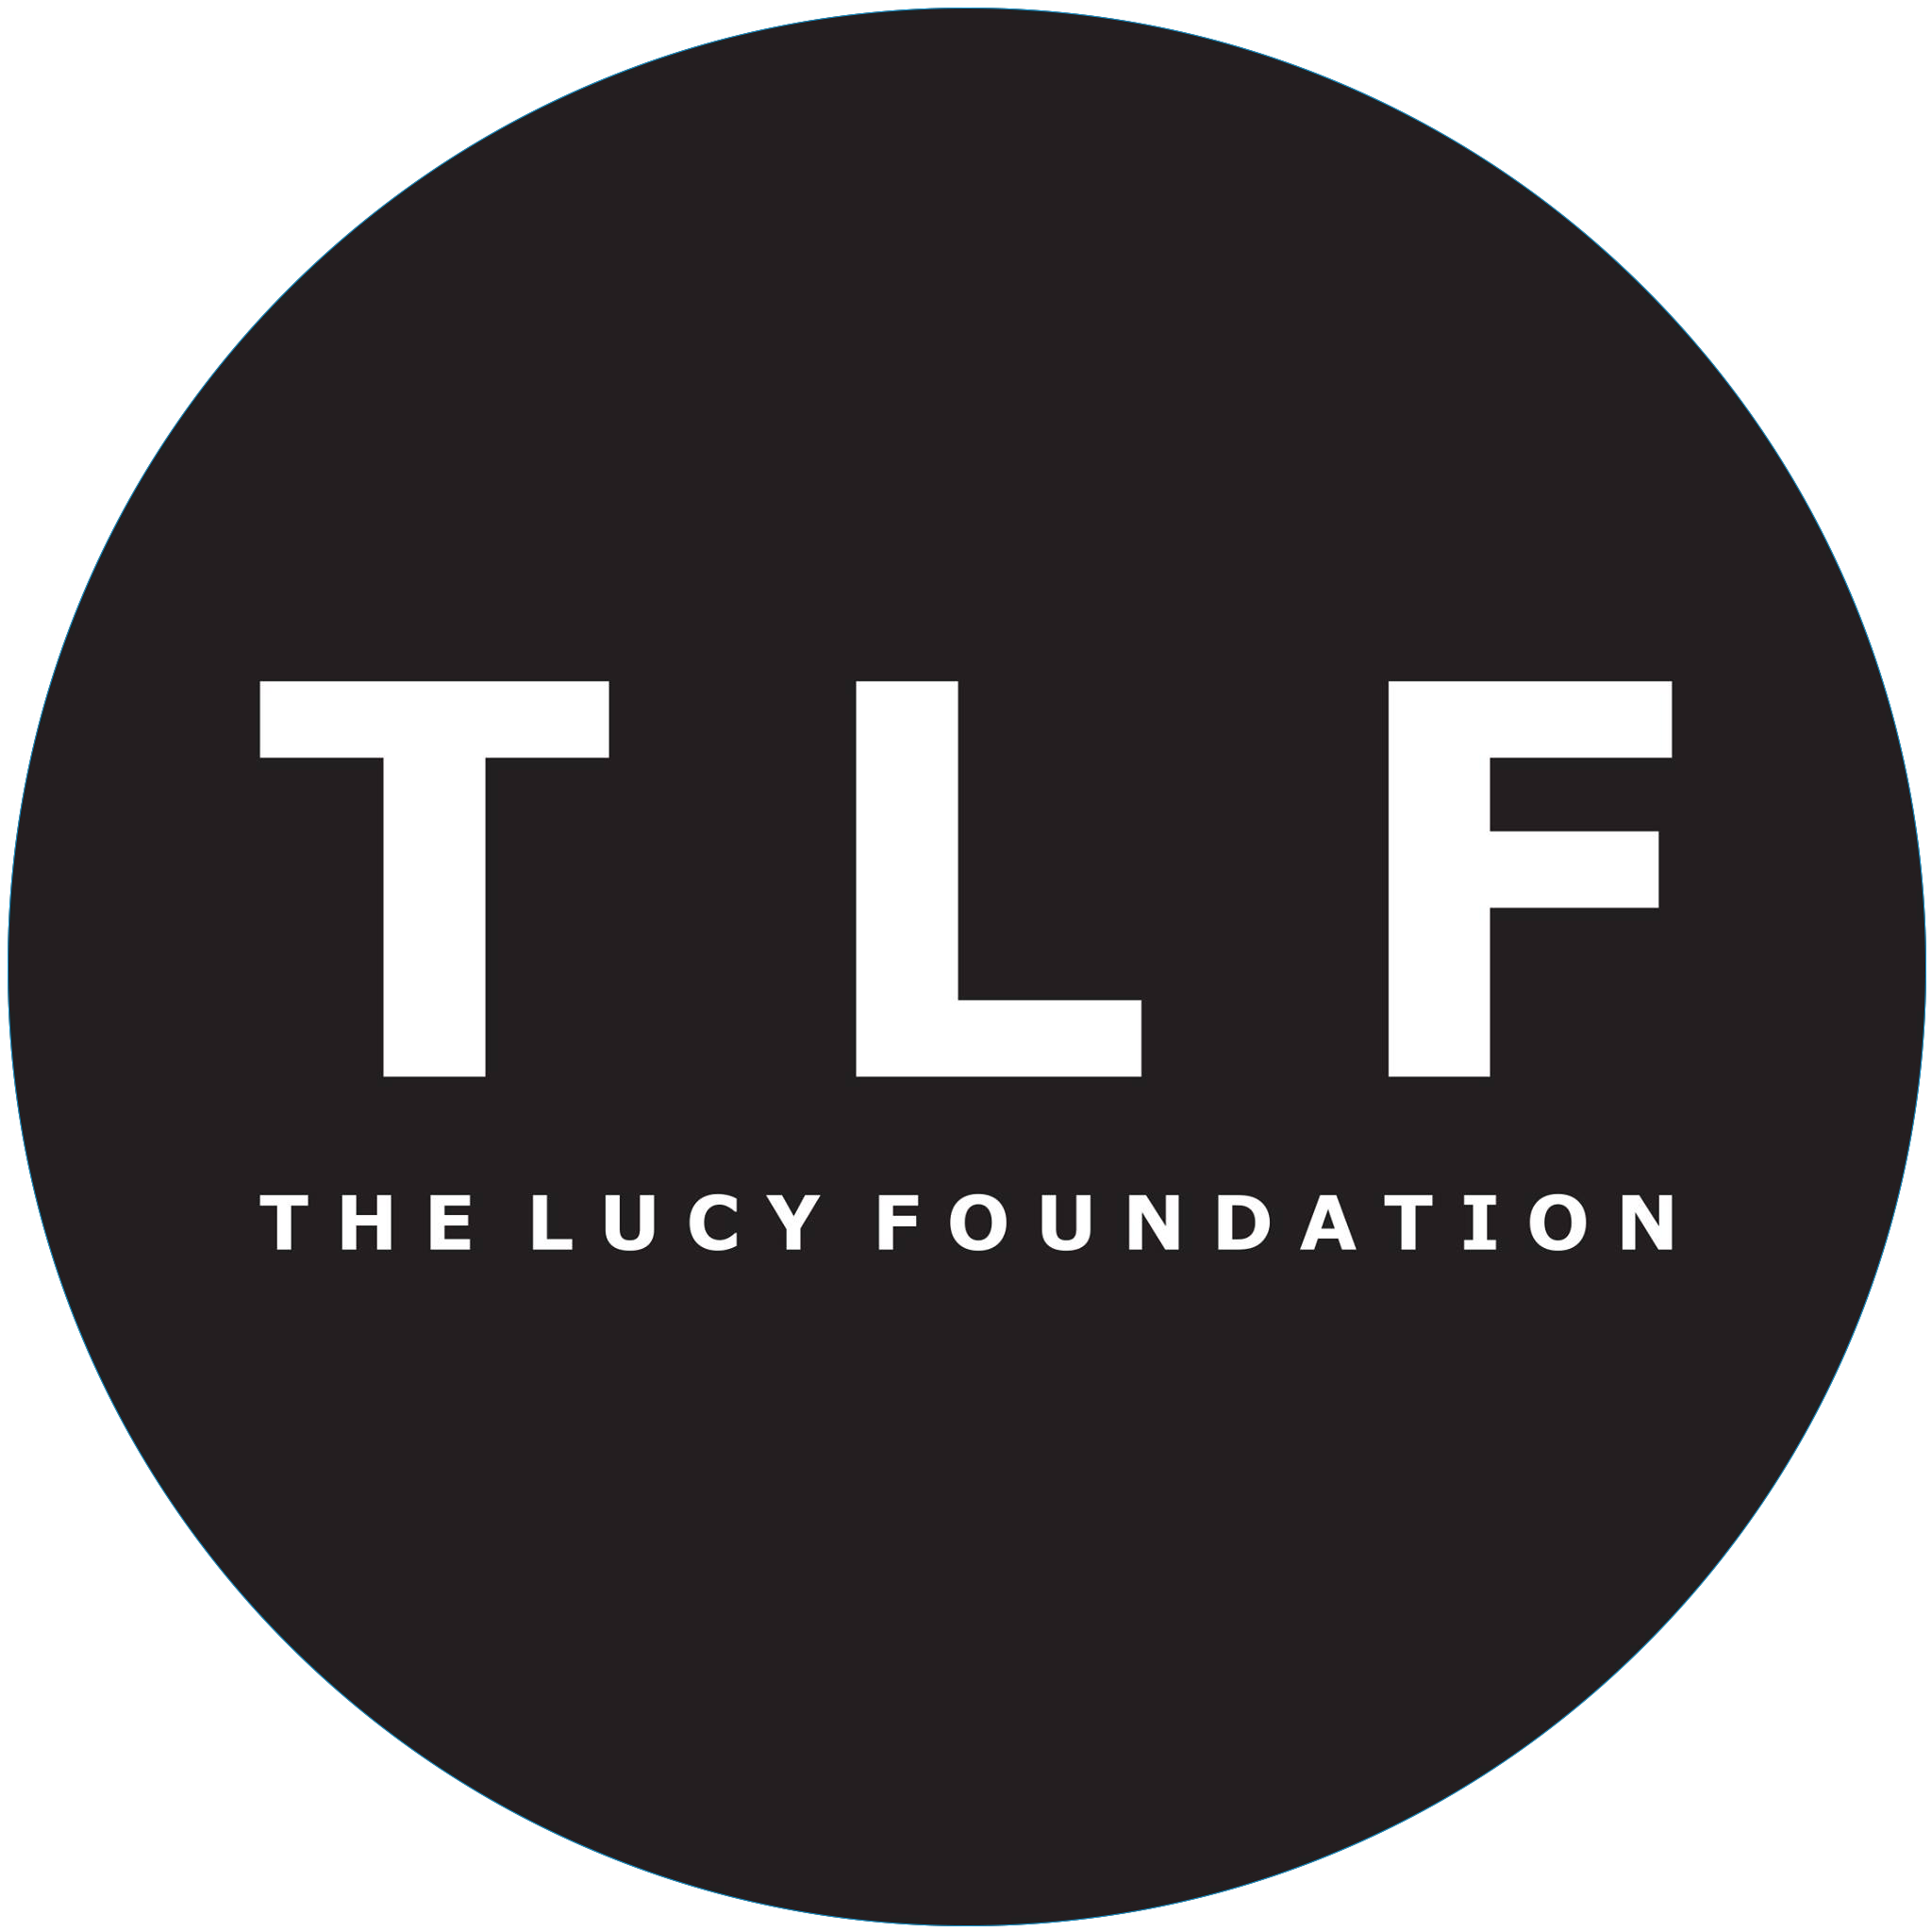 The Lucy Foundation in white text, against a round black background